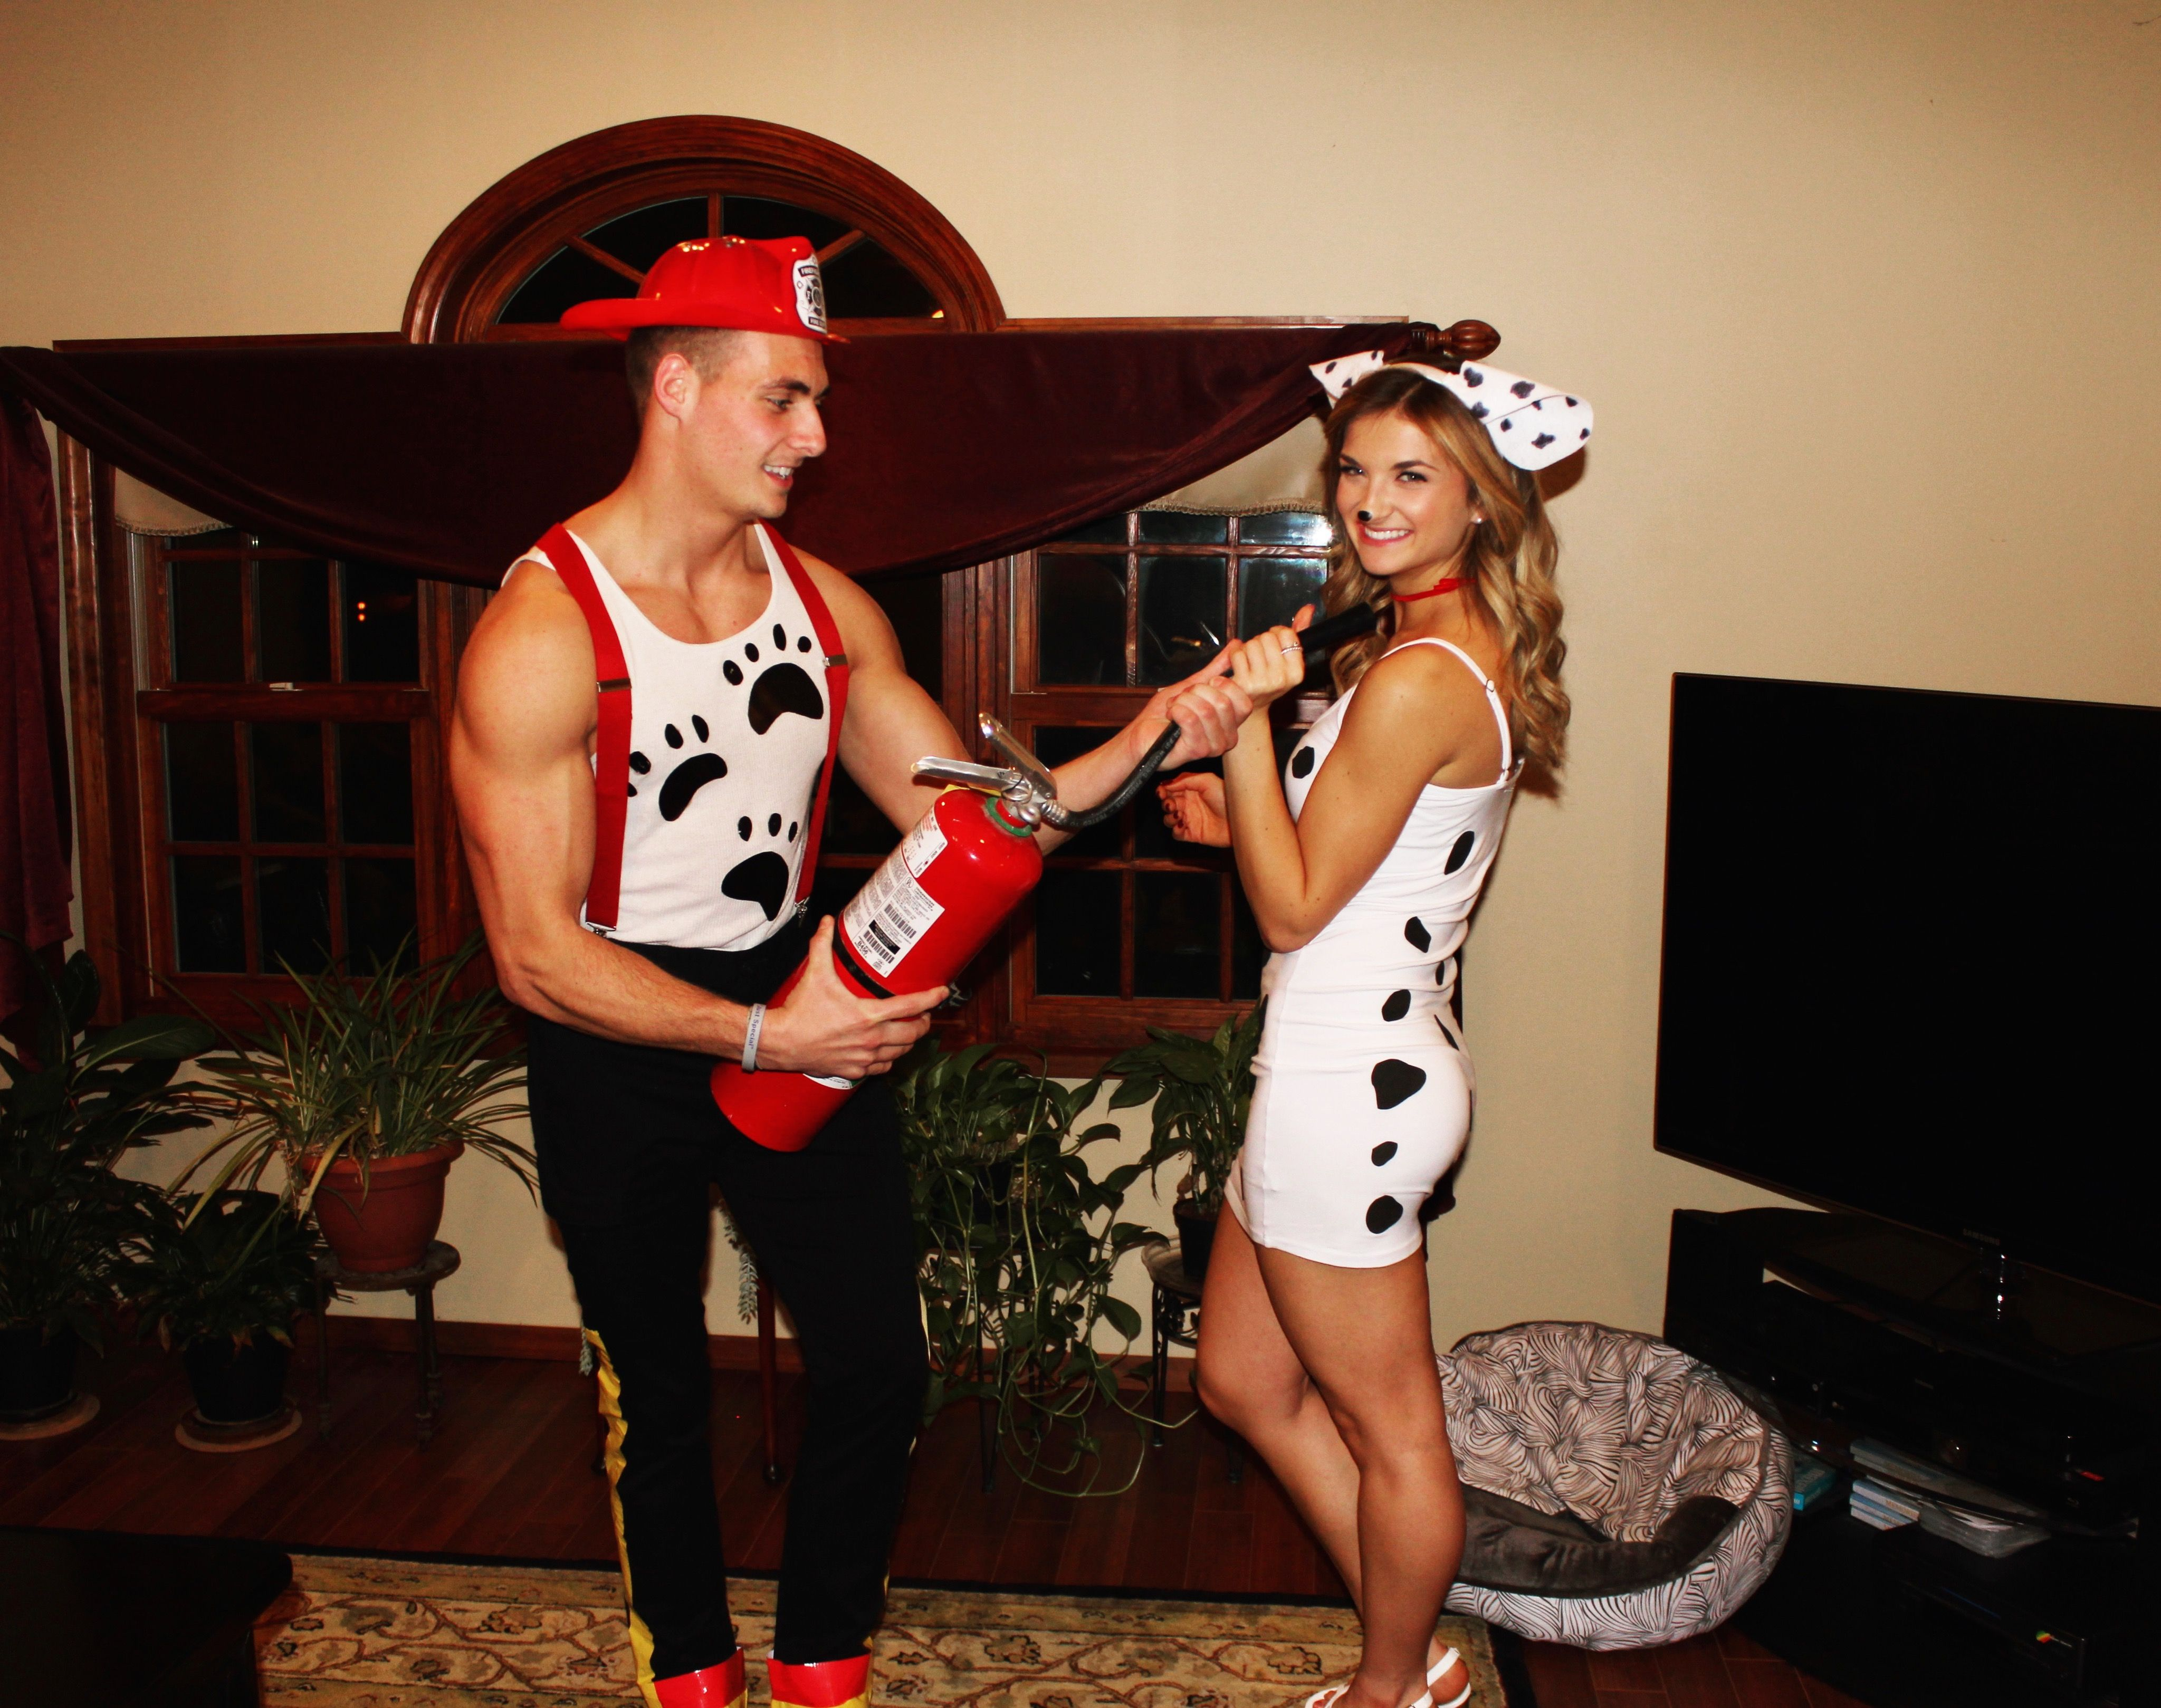 Couple halloween costume firefighter and Dalmatian dog